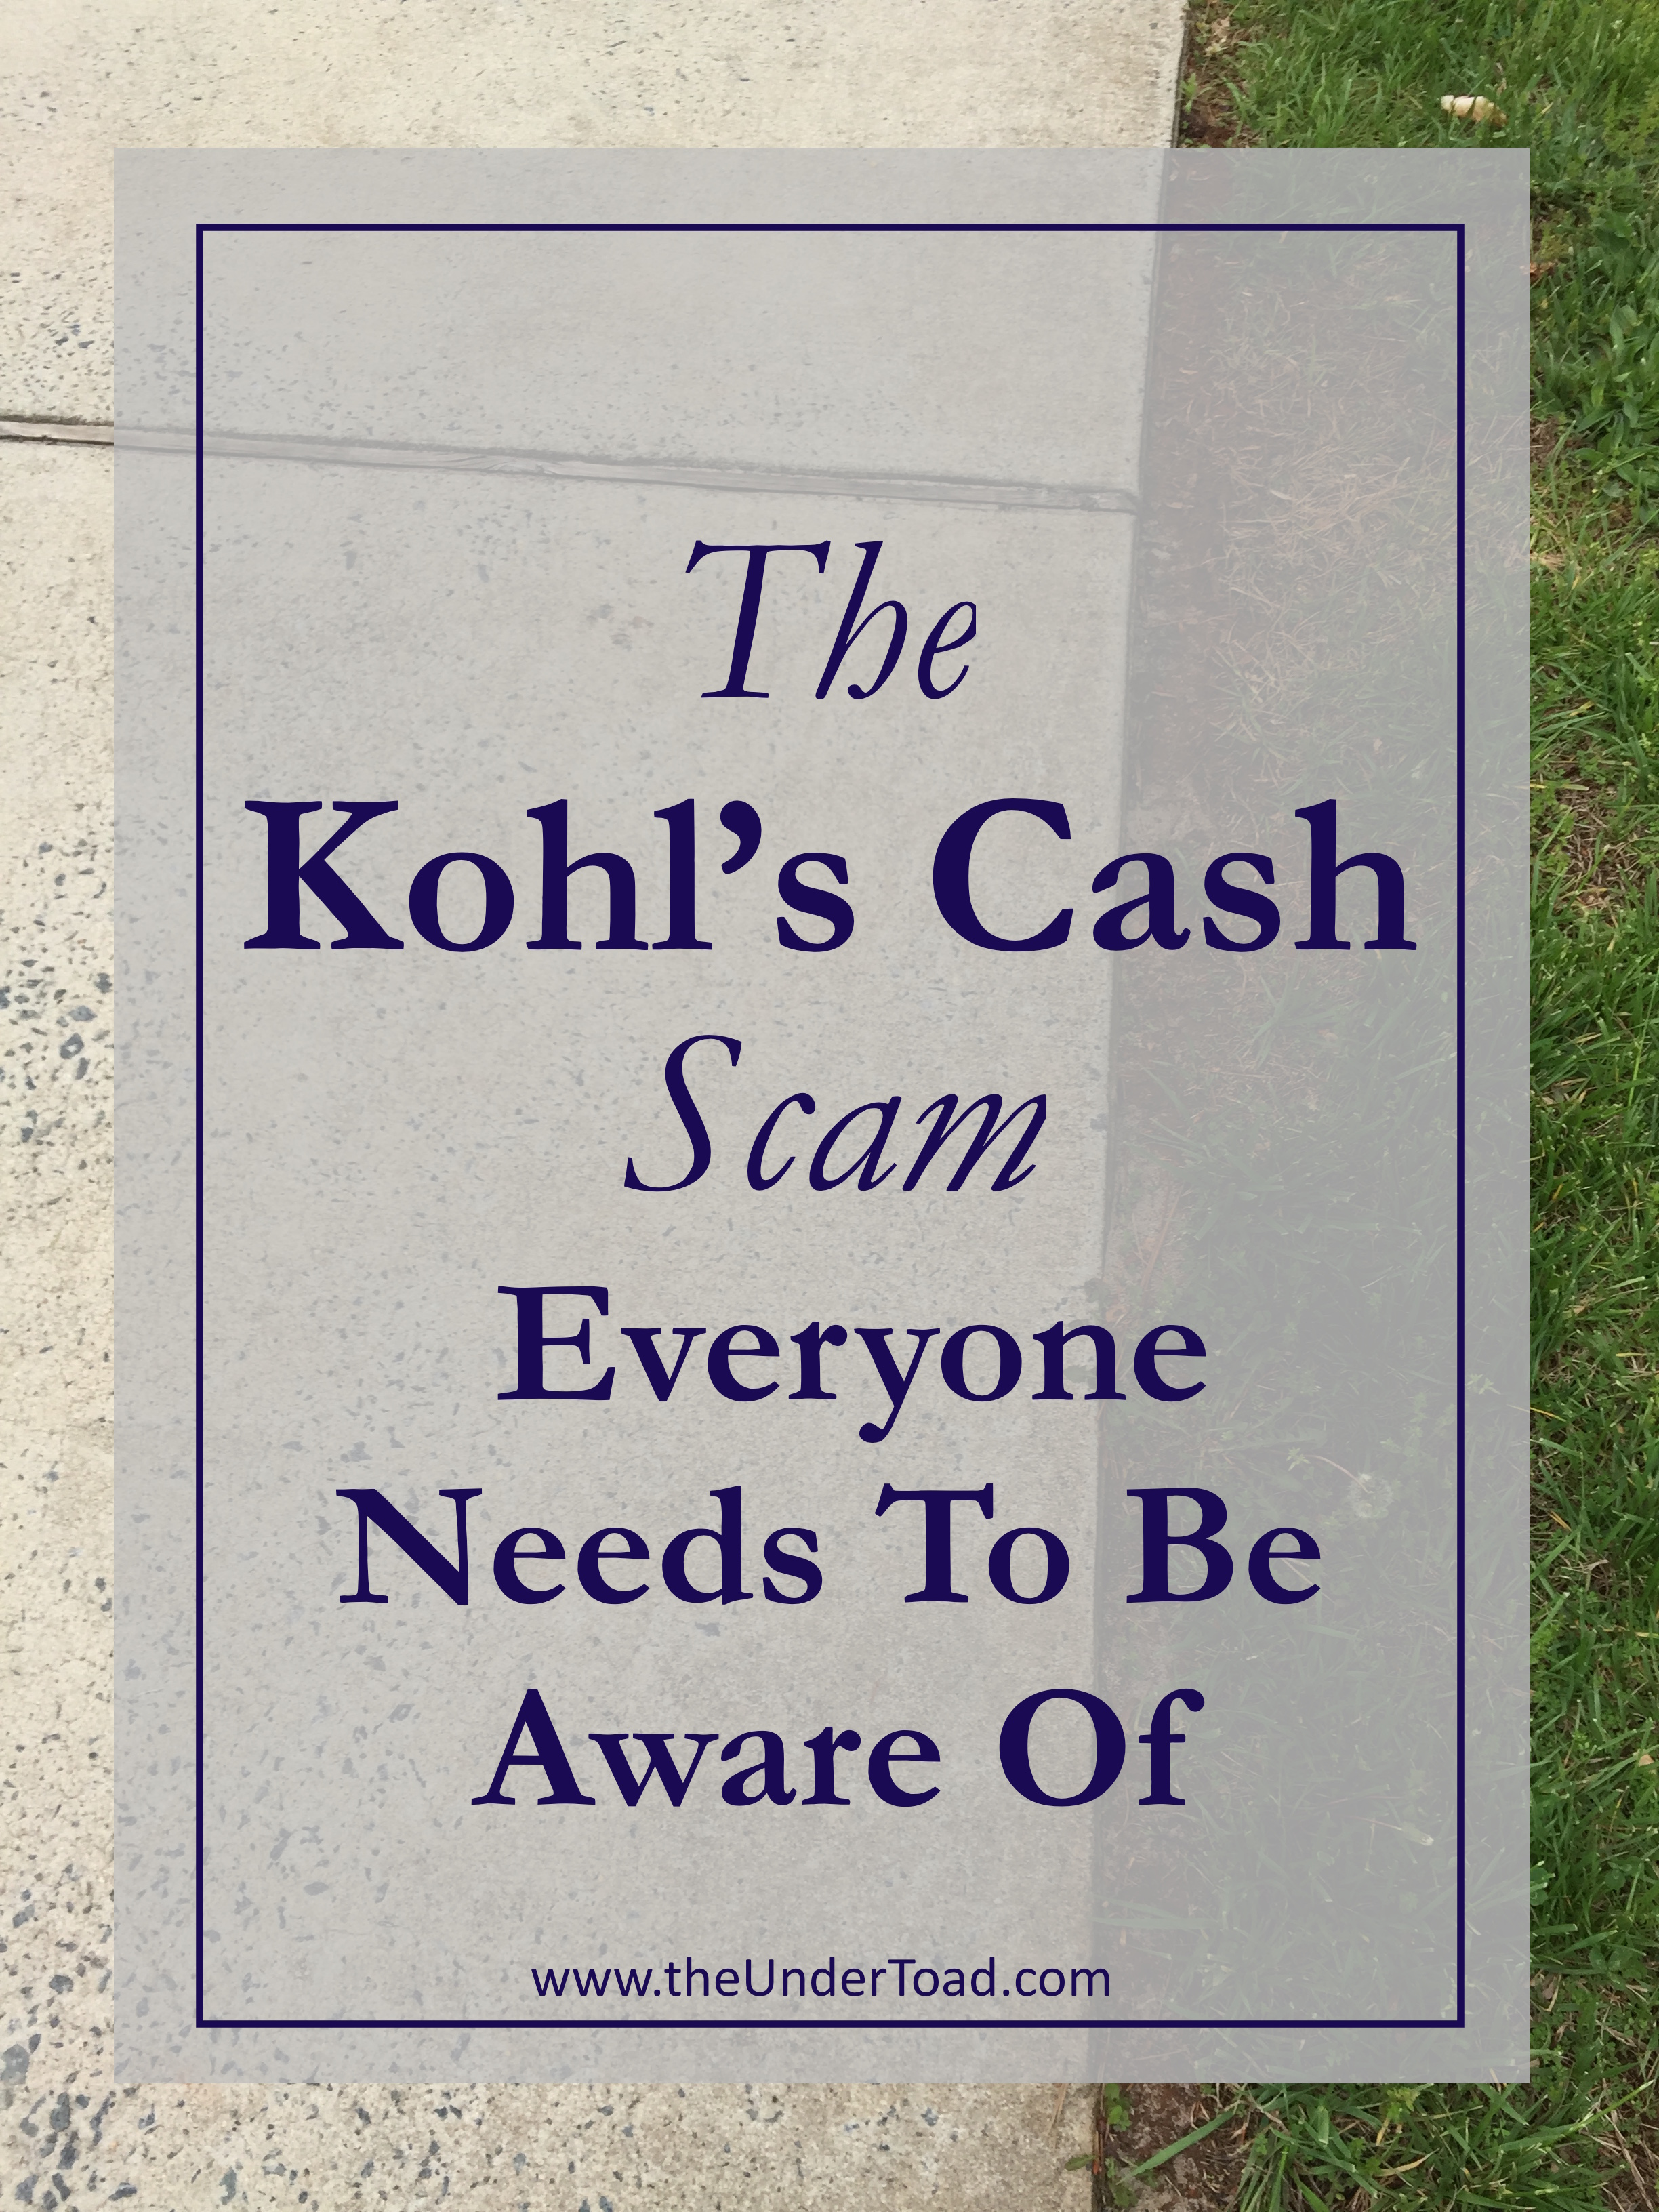 Has My Kohl\'s Account Been Hacked? | The UnderToad